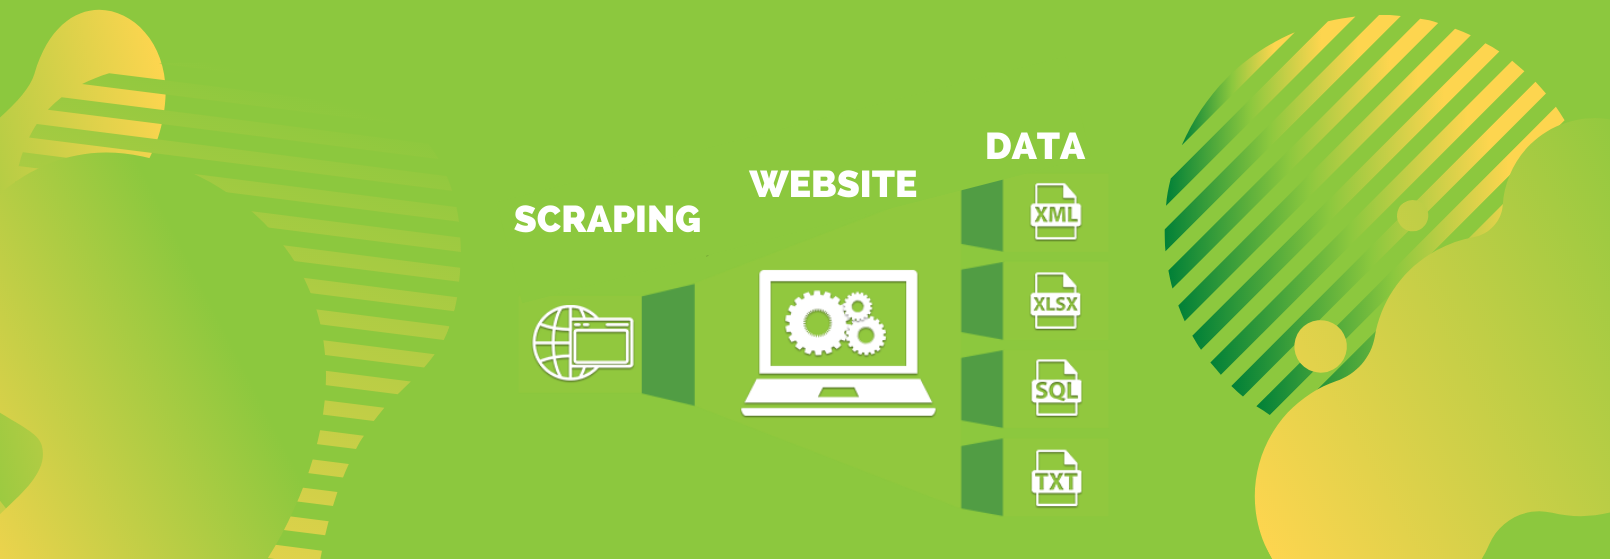 Data_scraping